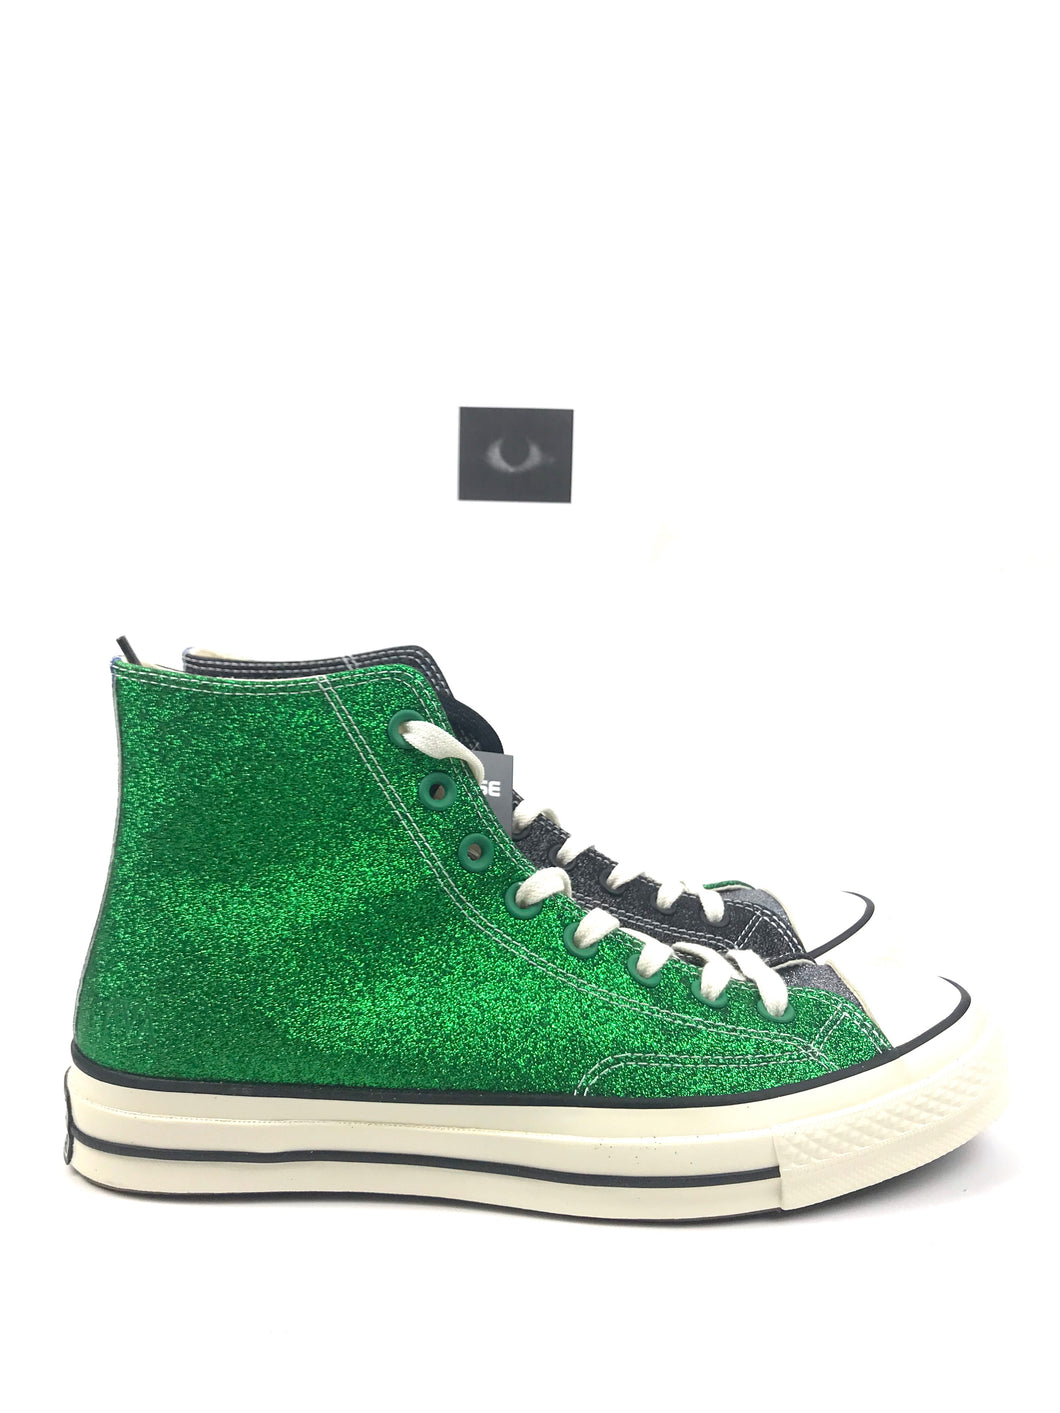 b1aee6cd1ca78 ... coupon code for jw anderson x converse chuck taylor all star 70s hi  glitter green black